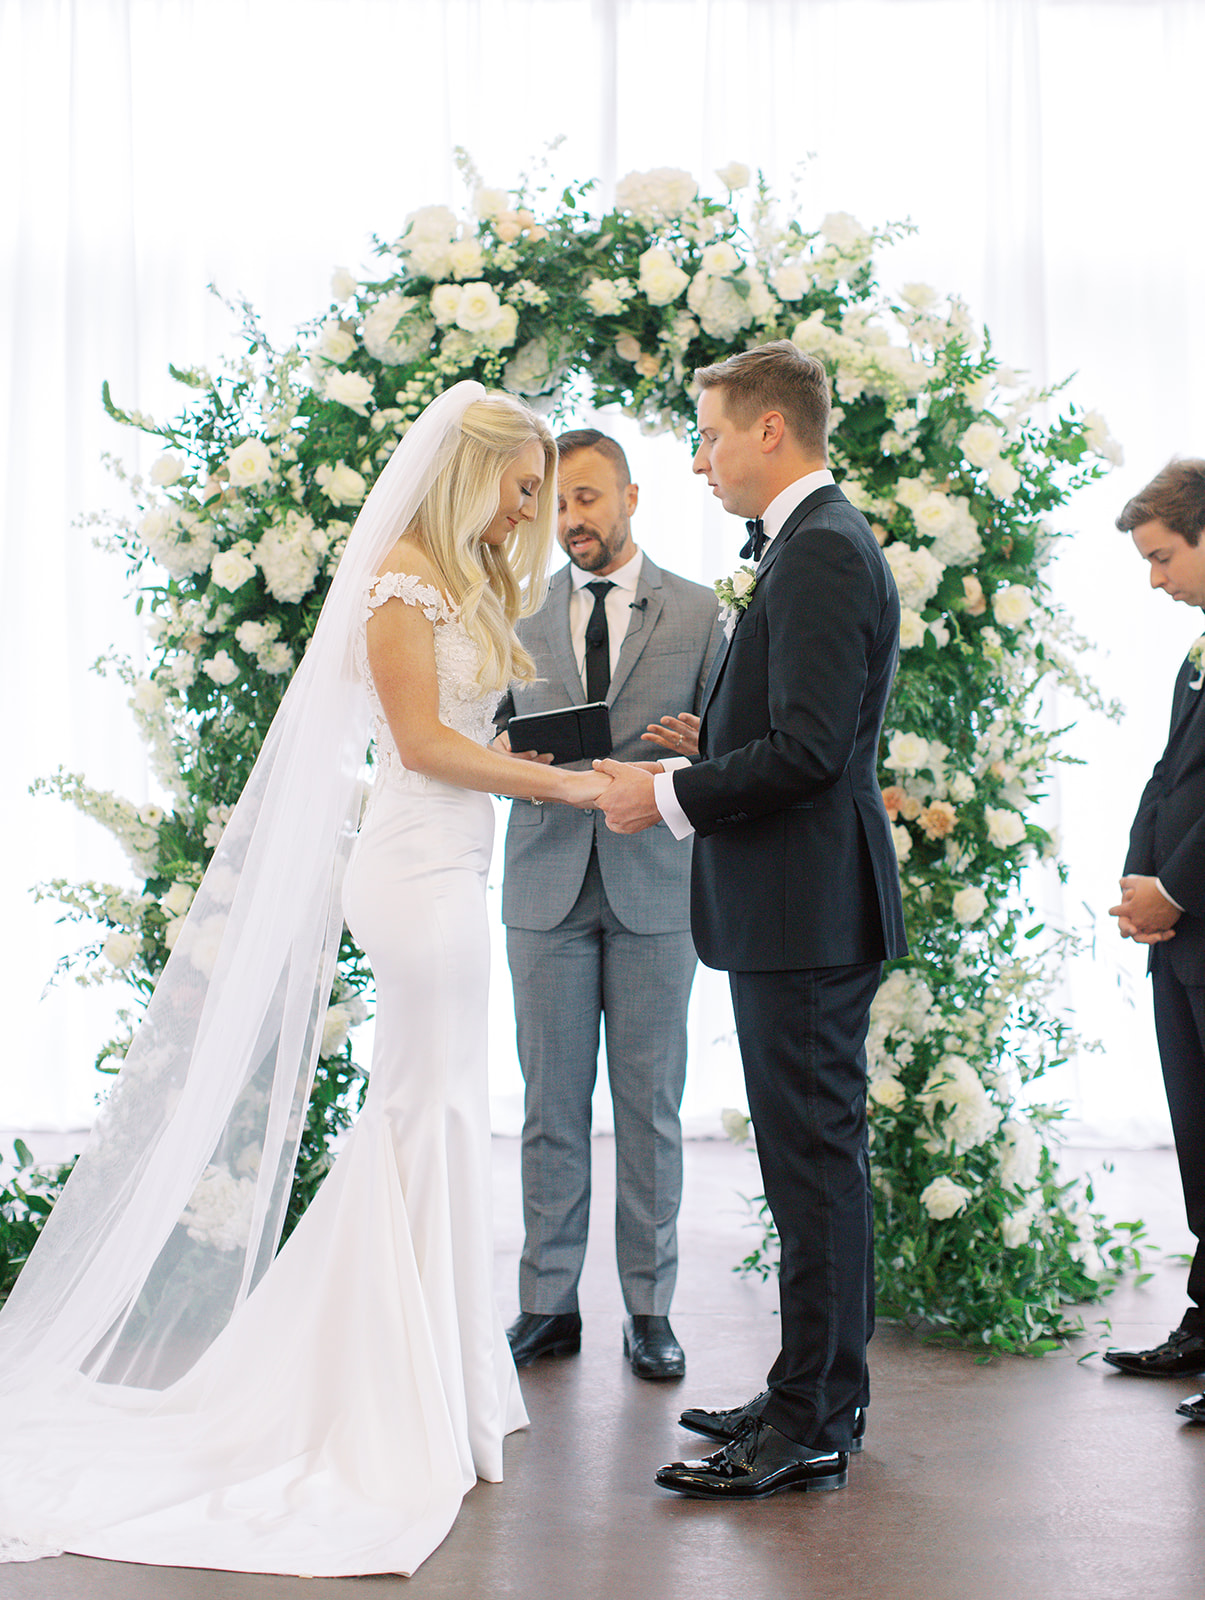 Bride and groom praying together at Ritz Charles wedding ceremony